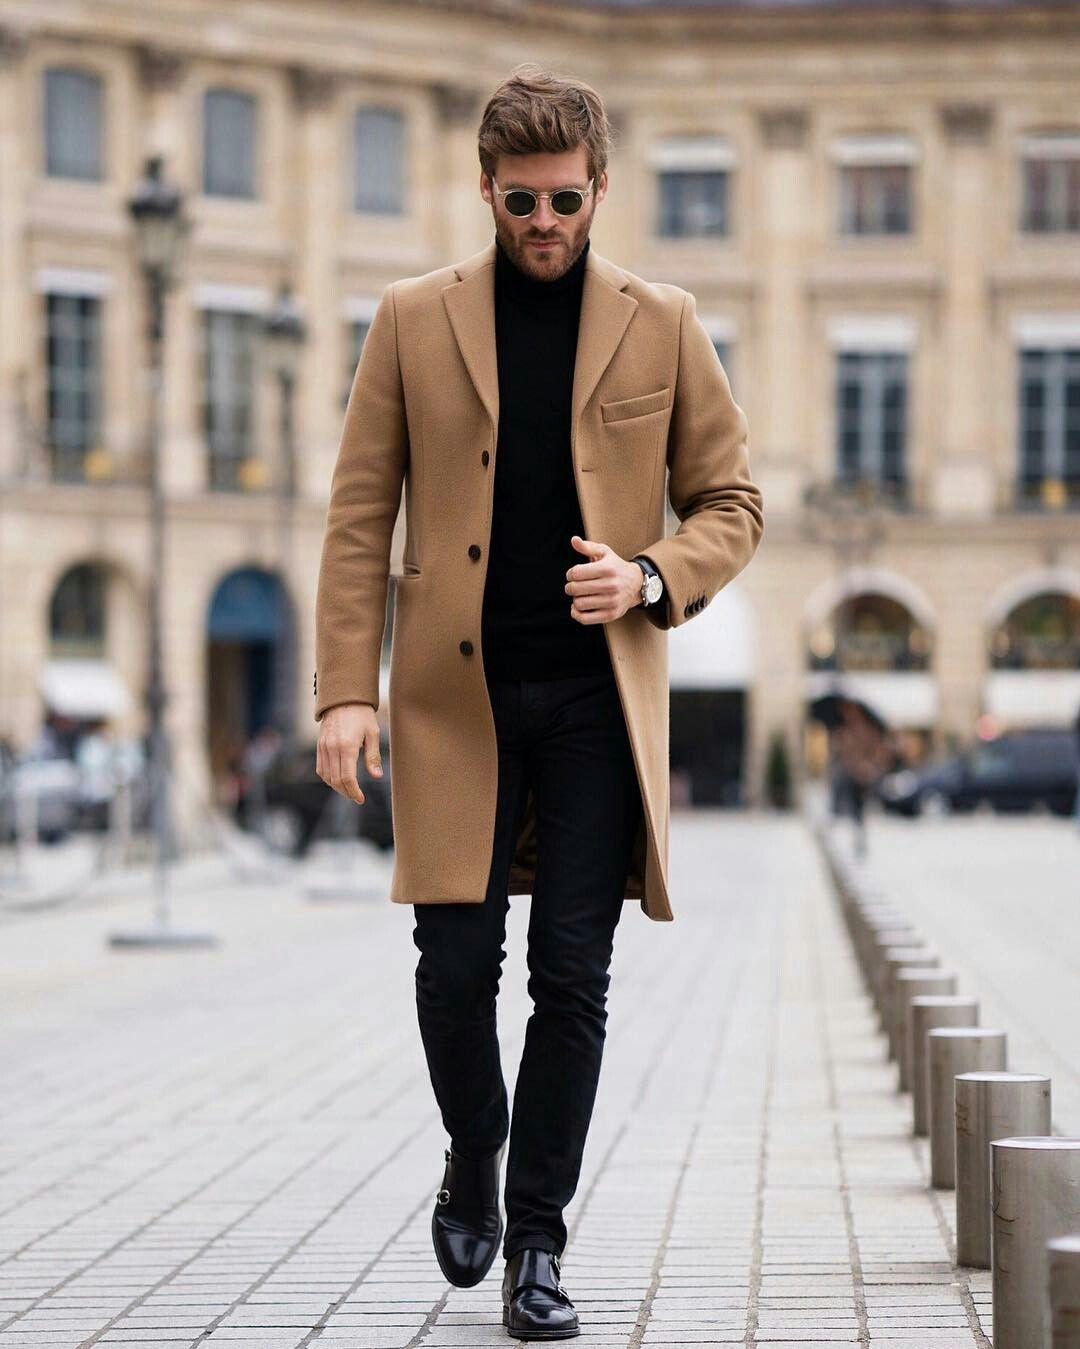 Classy haircuts for men valhery  冬  pinterest  menus fashion and stylish men